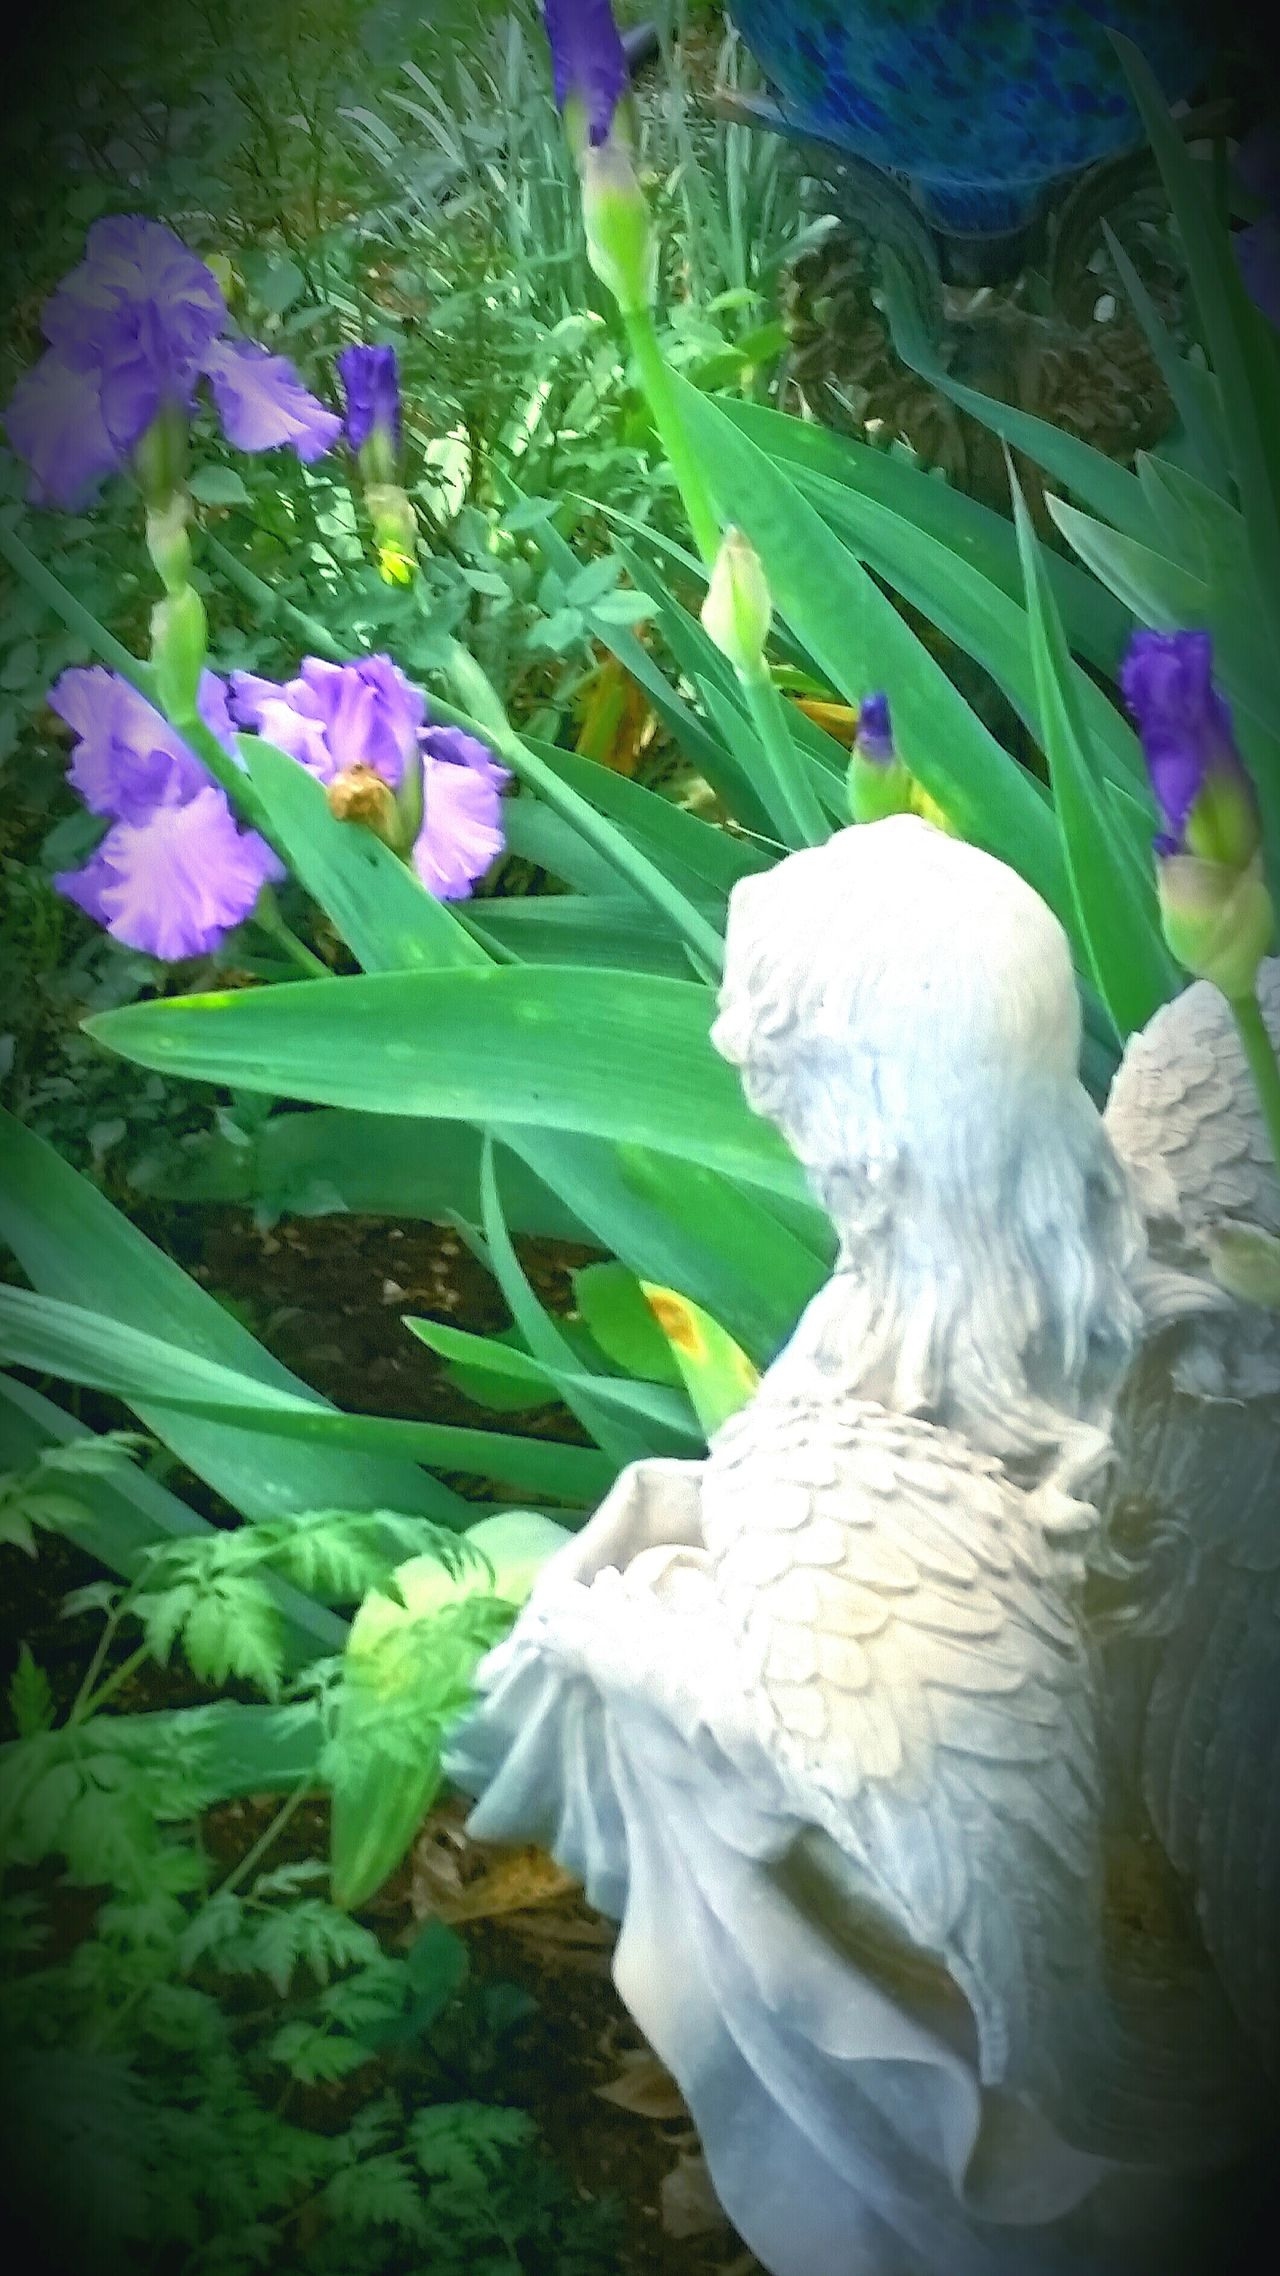 Garden Photography Flowers Angels Garden Outdoors Keeping Watch Spring Flowers